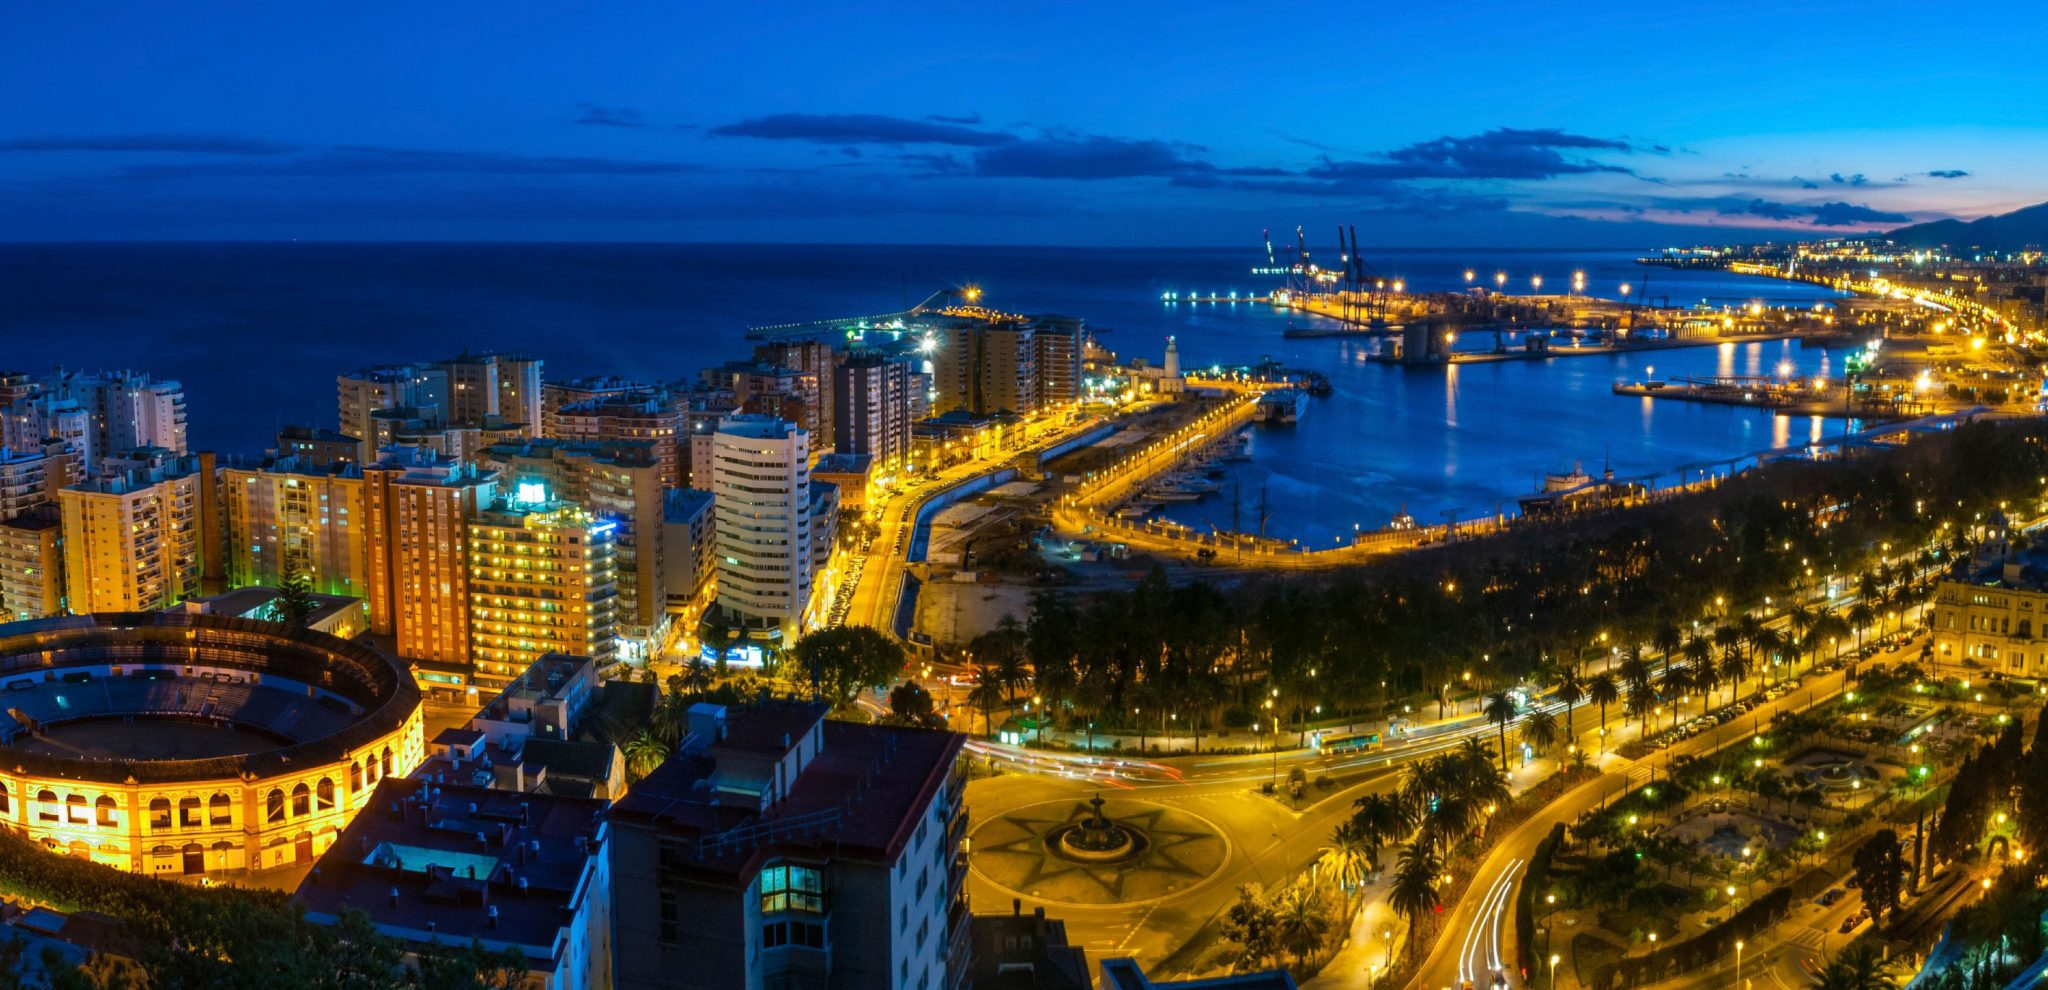 Yourandalusia.com - Travels in Andalucia - Tours in Southern Spain - Malaga at night - Yourandalusia FAQs